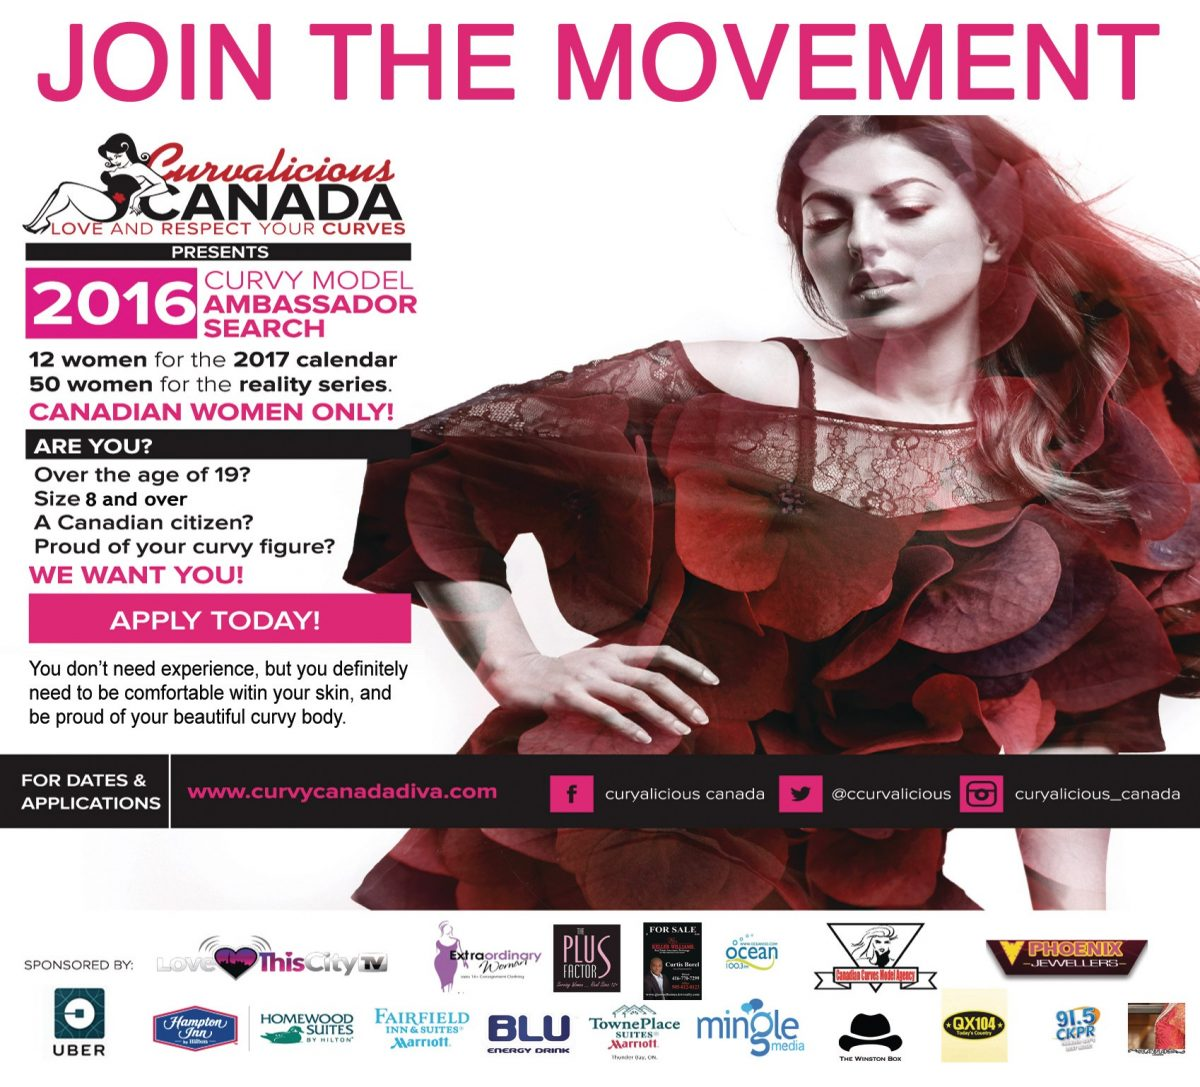 JOIN THE MOVEMENT - Curvalicious Canada www.curvycanadadiva.com is an organization where plus-size people can find a place to be themselves and meet like-minded people. We invite you to connect with us and get involved in our various events. Come to relax, party, meet new friends and be yourself without being judged. (CNW Group/Curvalicious Canada)